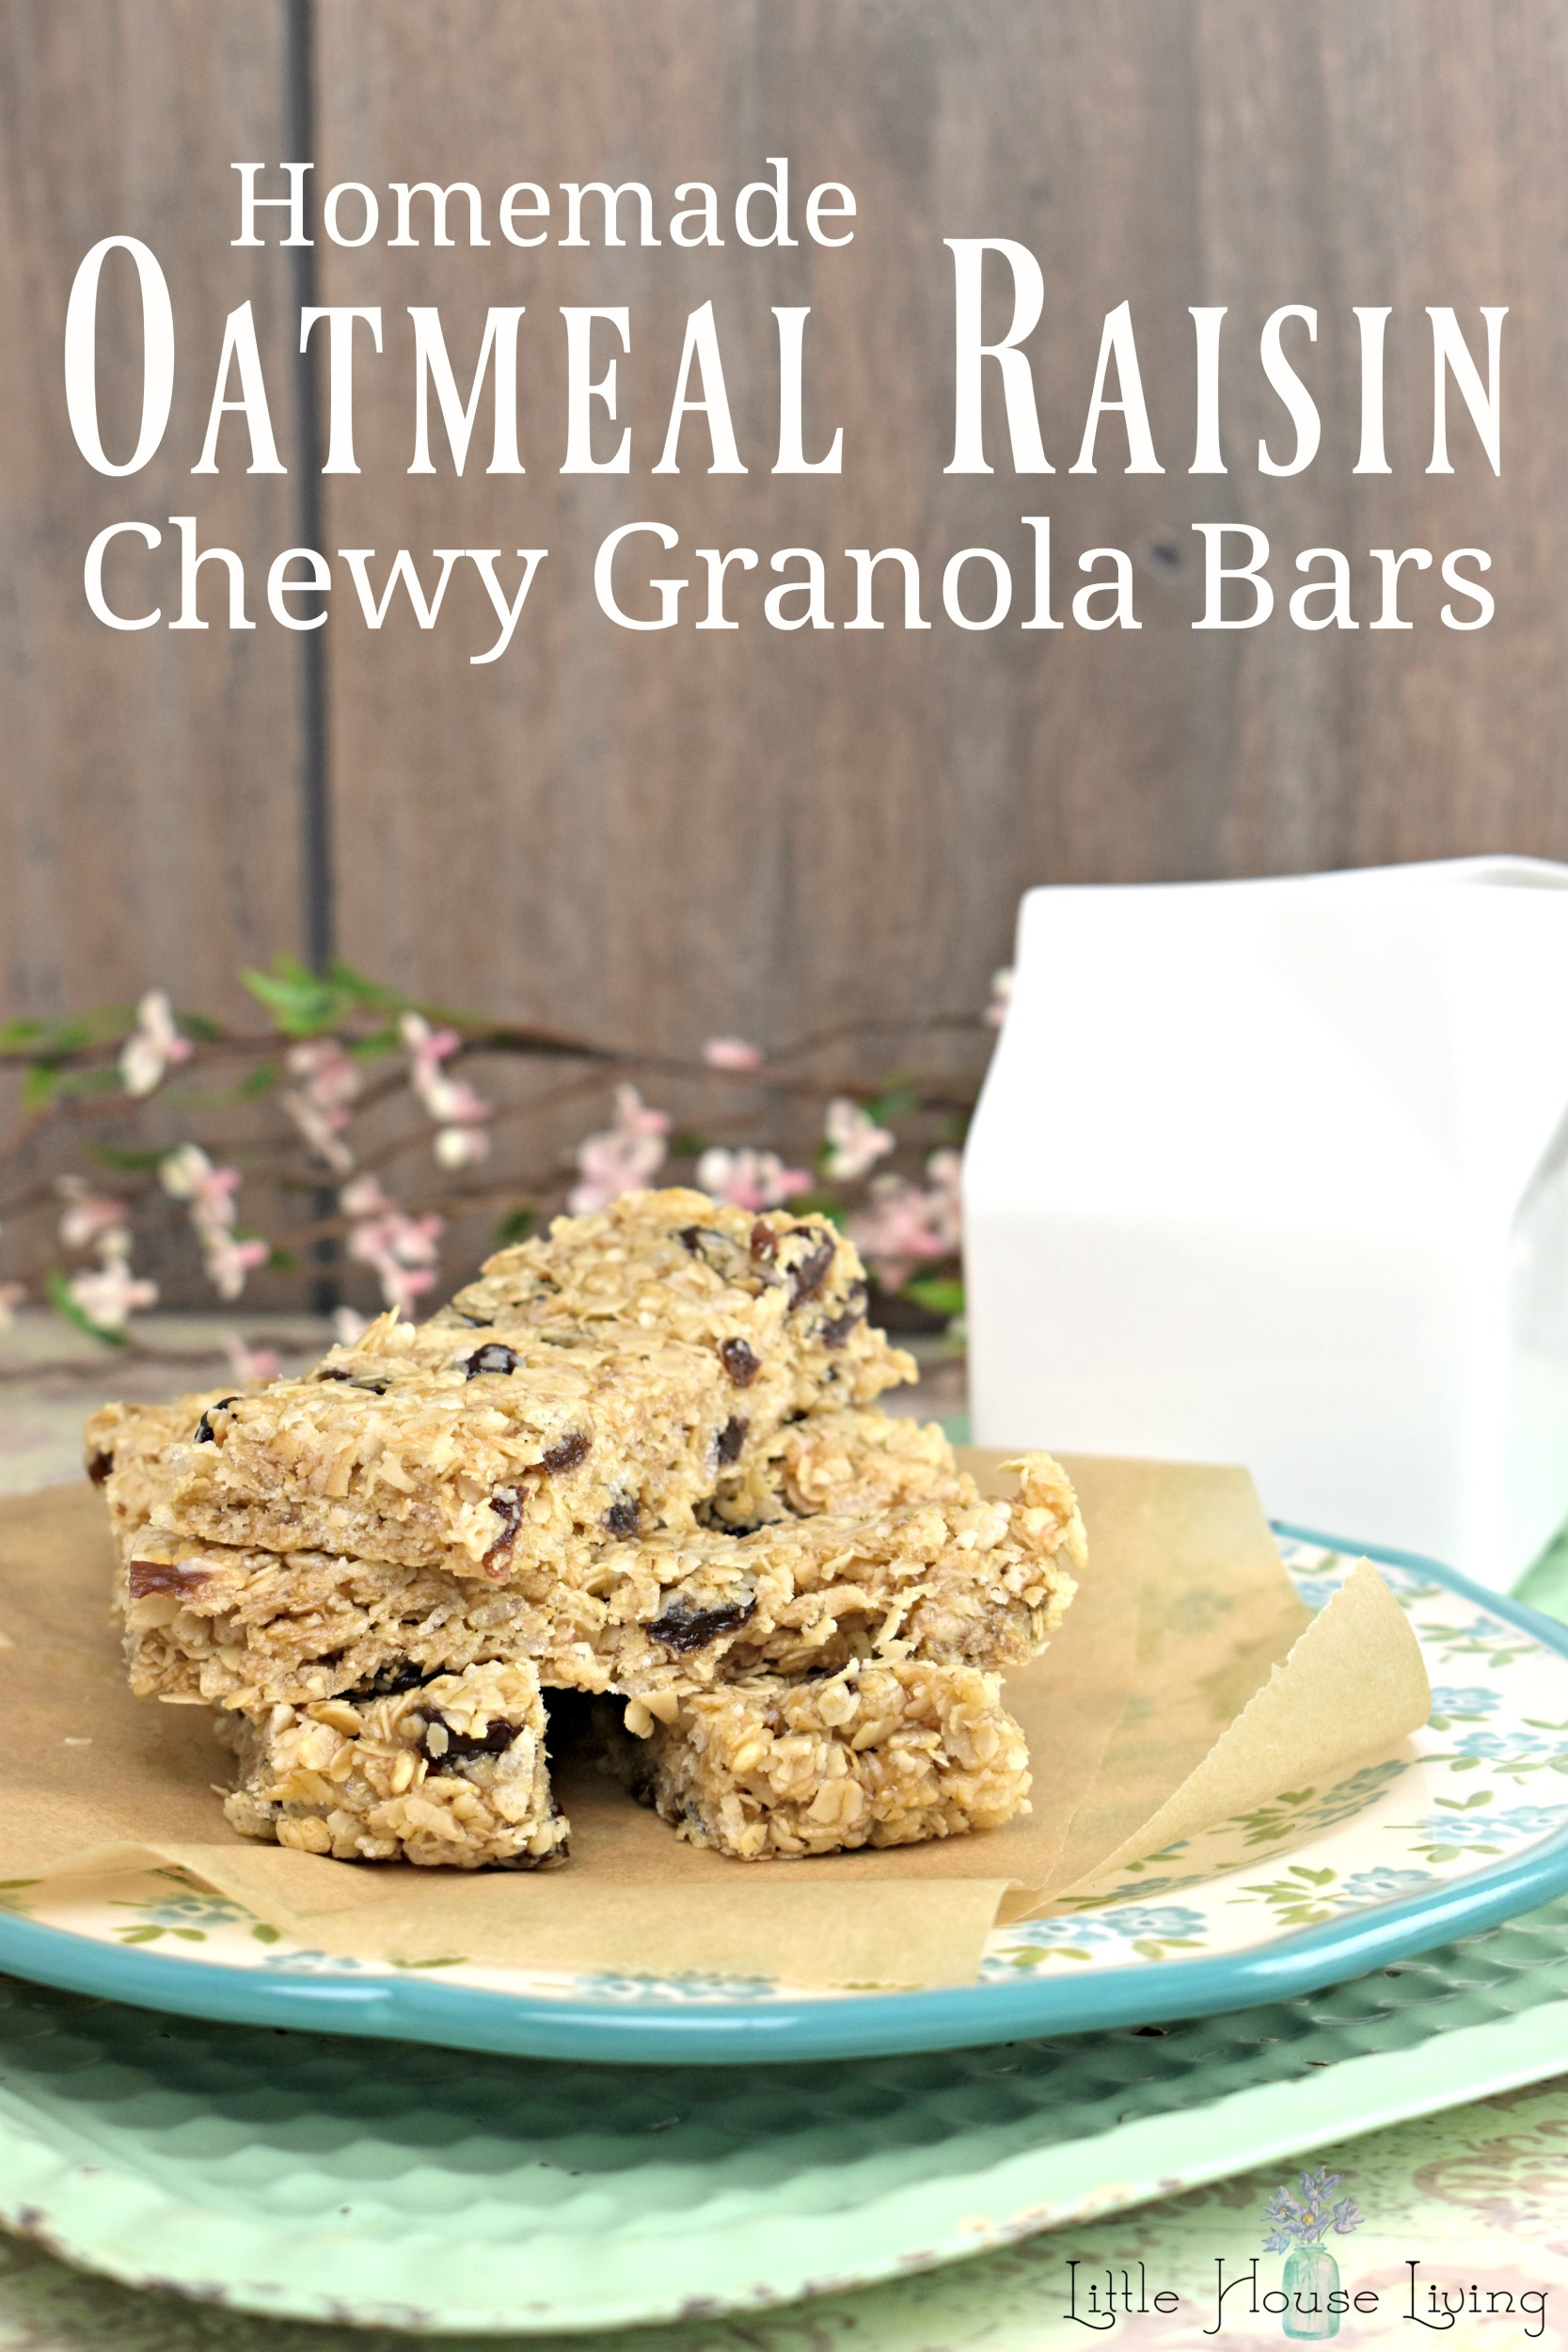 Enjoy making your own homemade chewy granola bars with this Oatmeal Raisin Granola Bars recipe. 